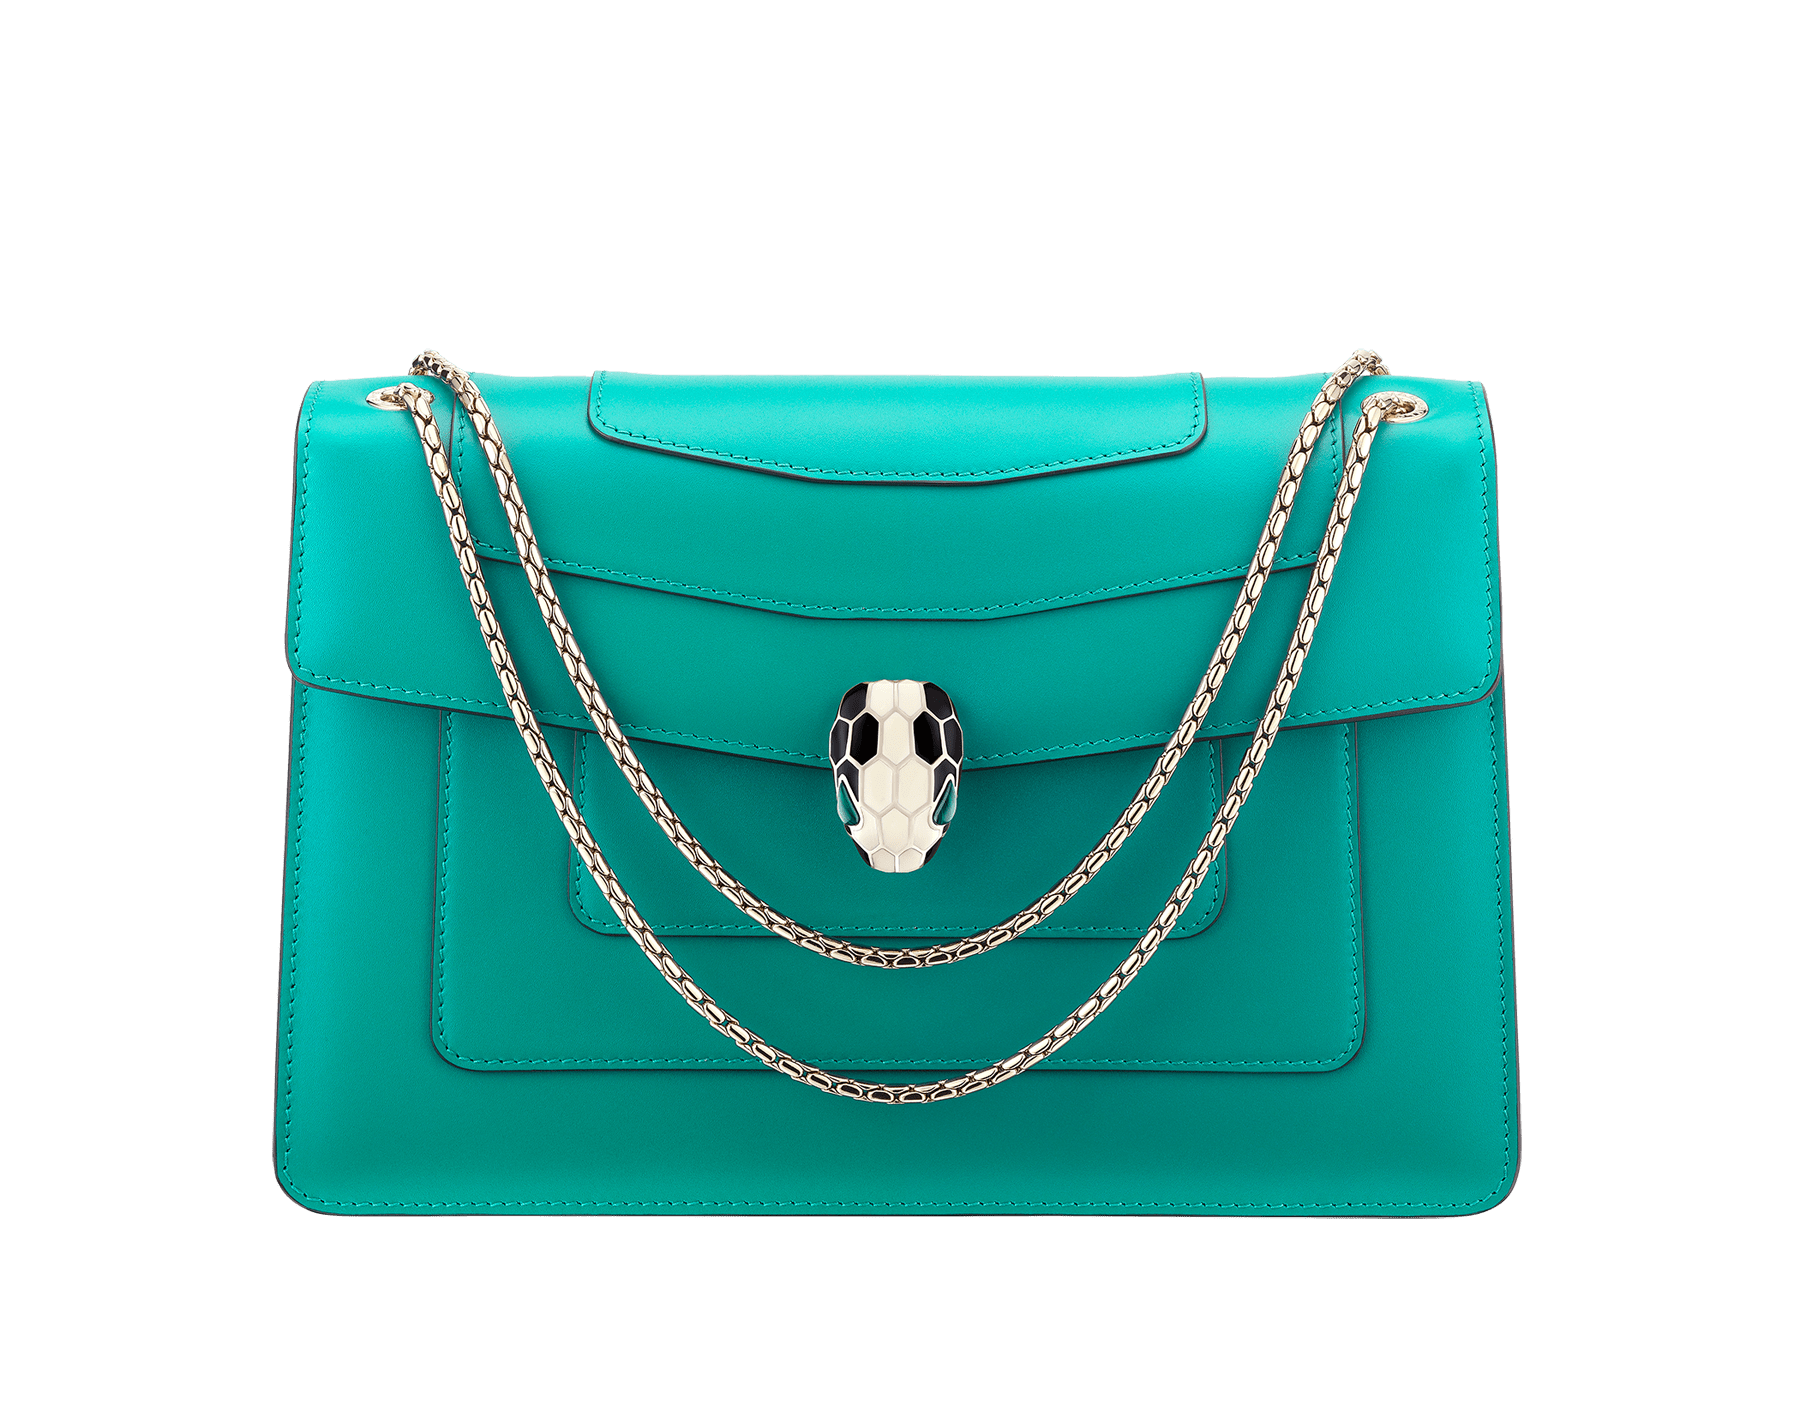 Serpenti Forever shoulder bag in tropical turquoise smooth calf leather. Snakehead closure in light gold plated brass decorated with black and white enamel, and green malachite eyes. 287931 image 1